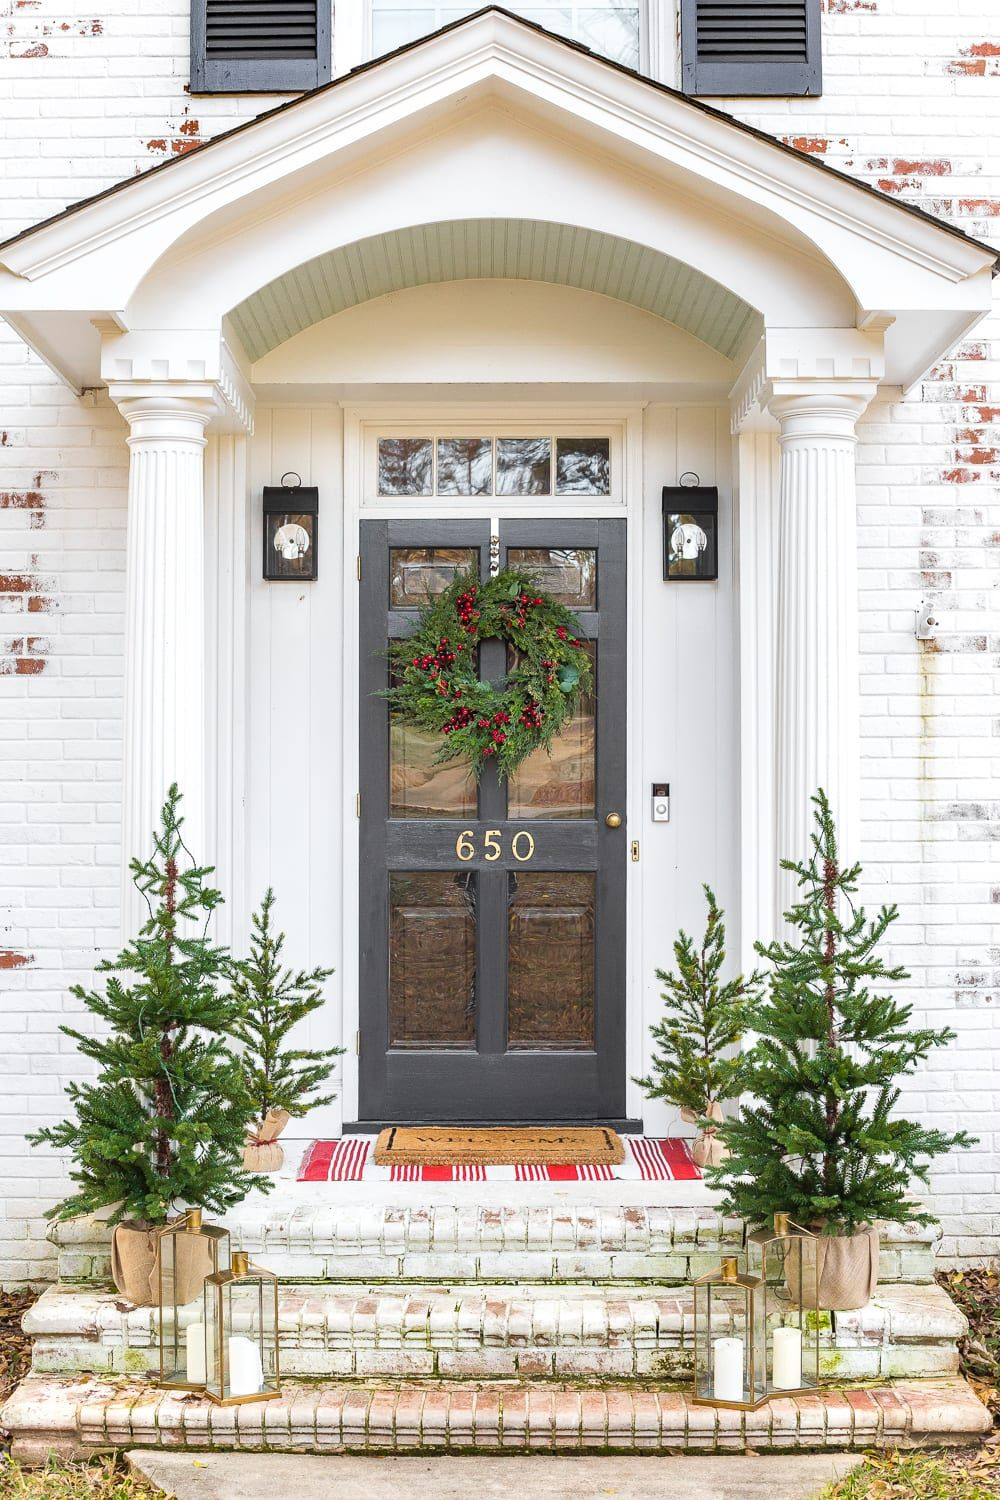 White house front door decorated for the holidays with a wreath and 4 small christmas trees and candles.